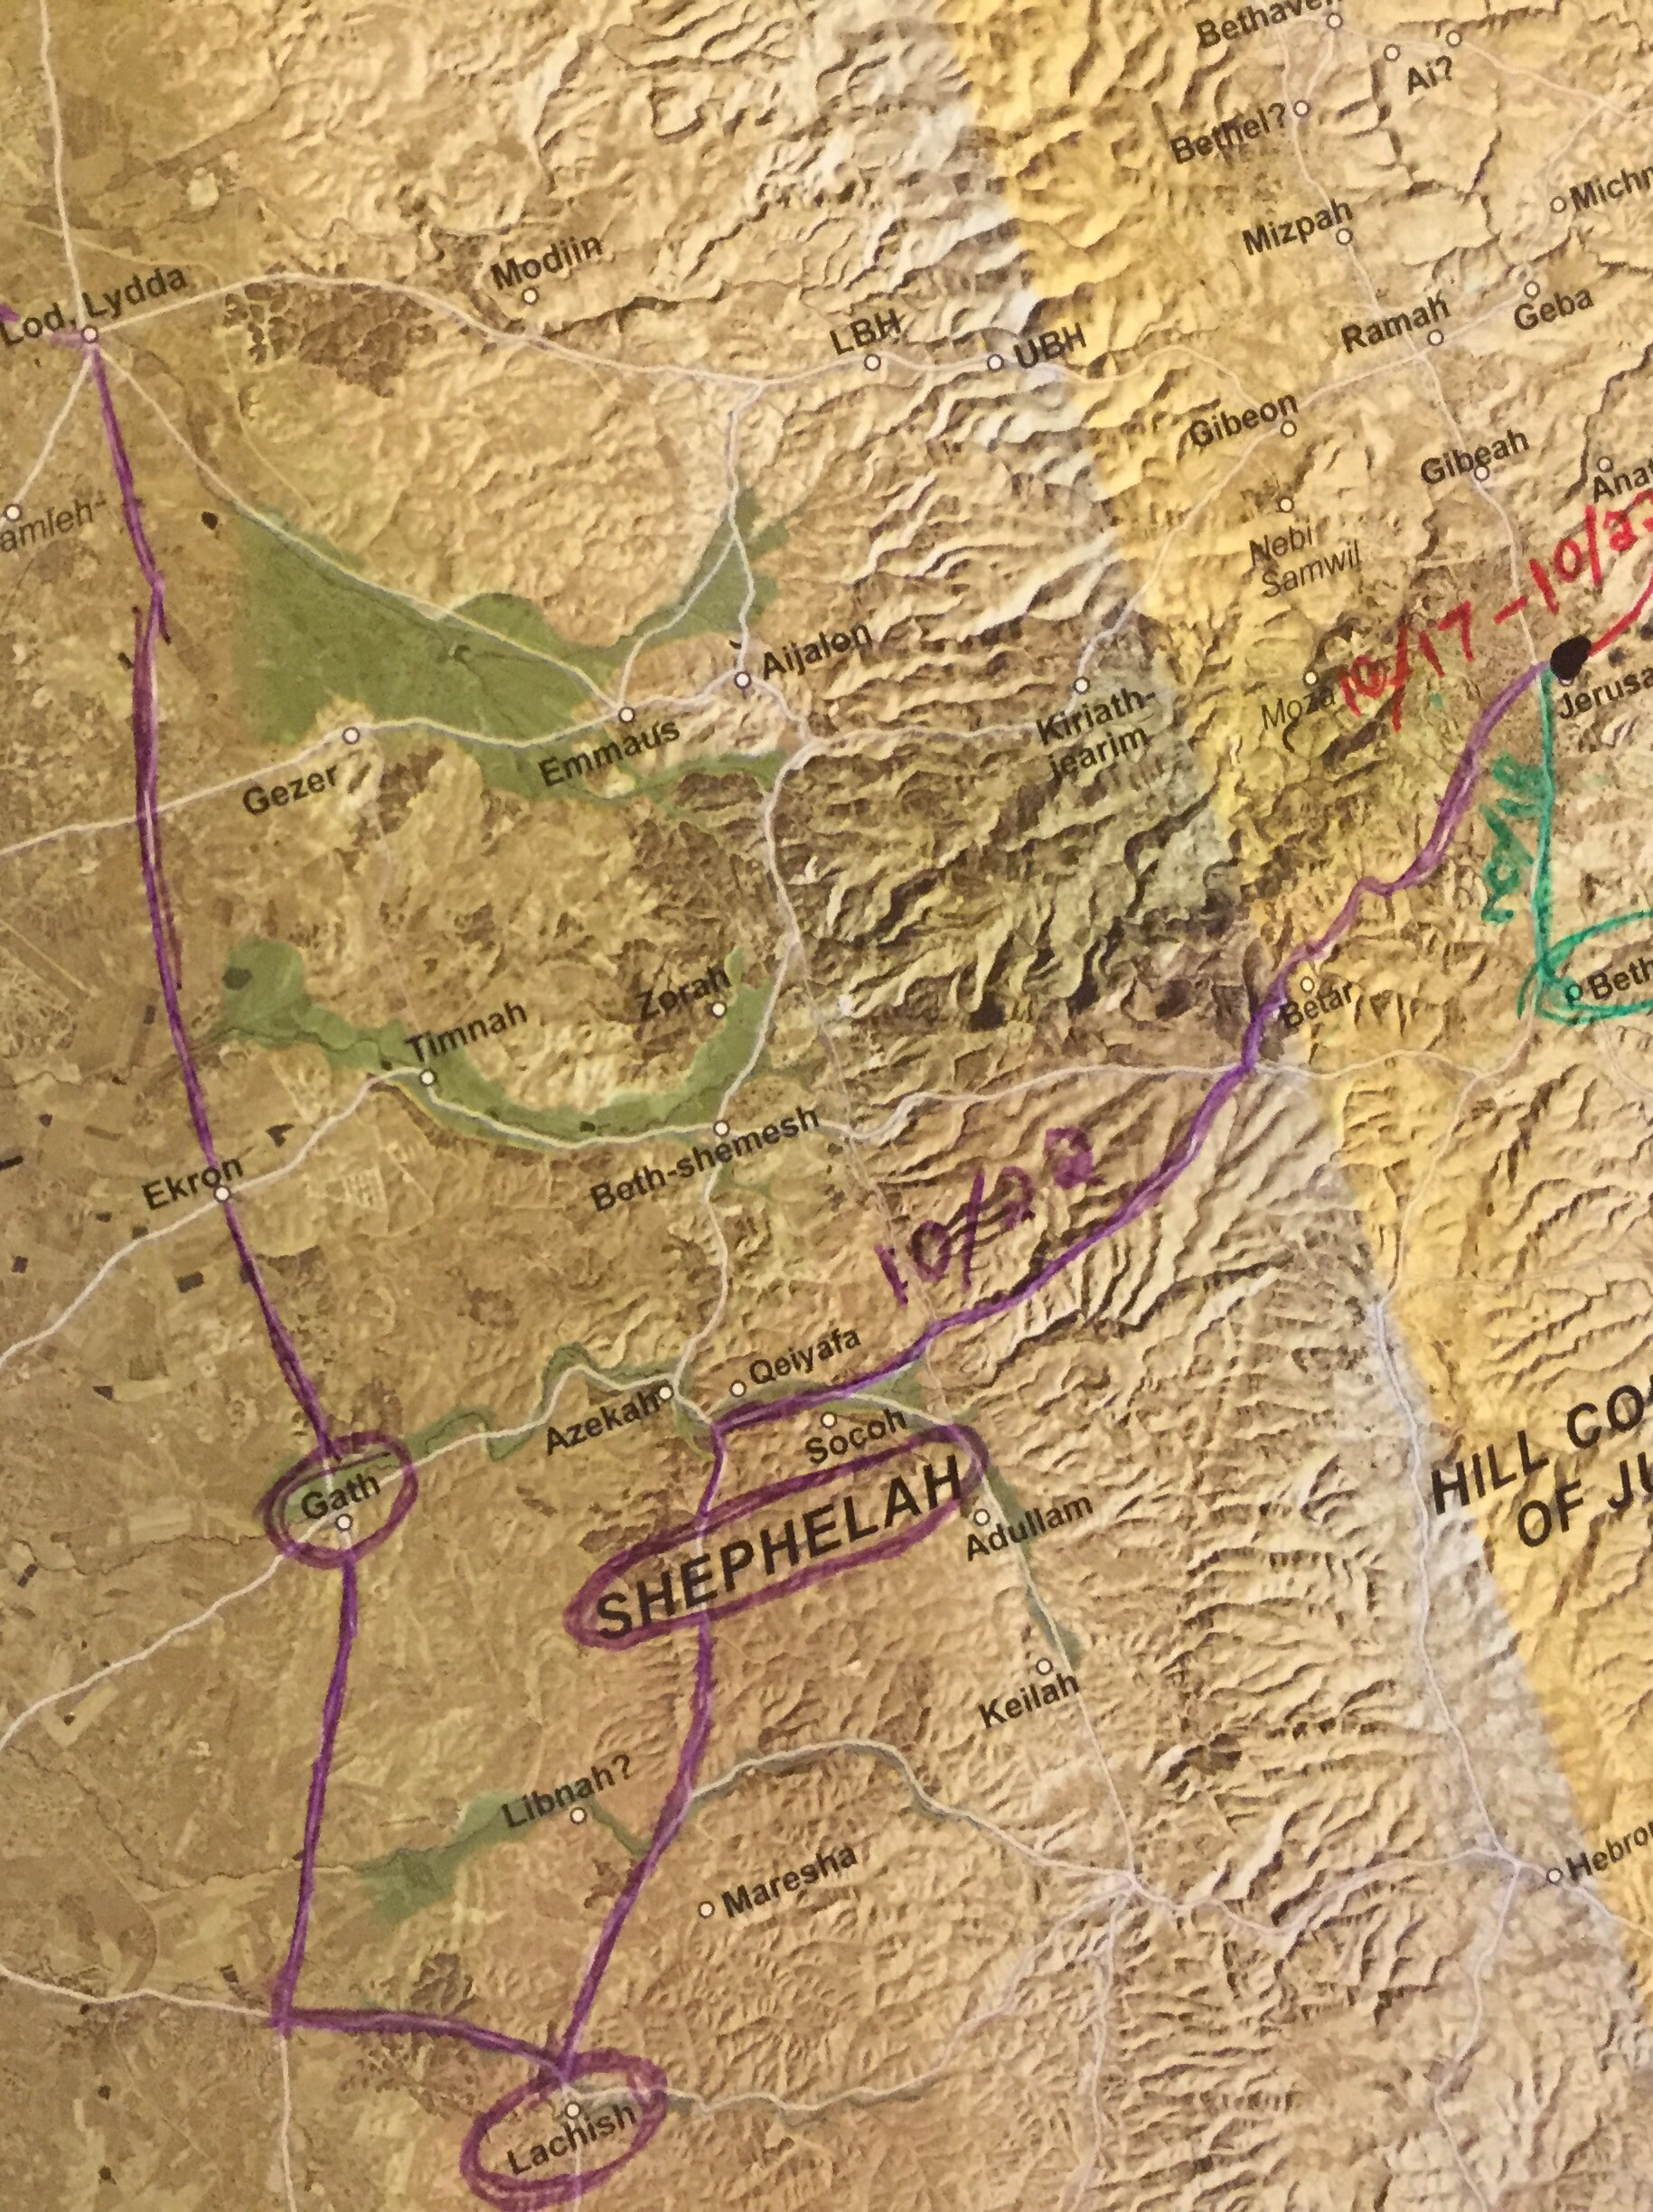 There should be a purple circle north at the intersection between Azekah, Qeiyafa & Socoh. That is where we stopped in the valley of Elah. Beth-shemesh, just north of that, should also be circled.